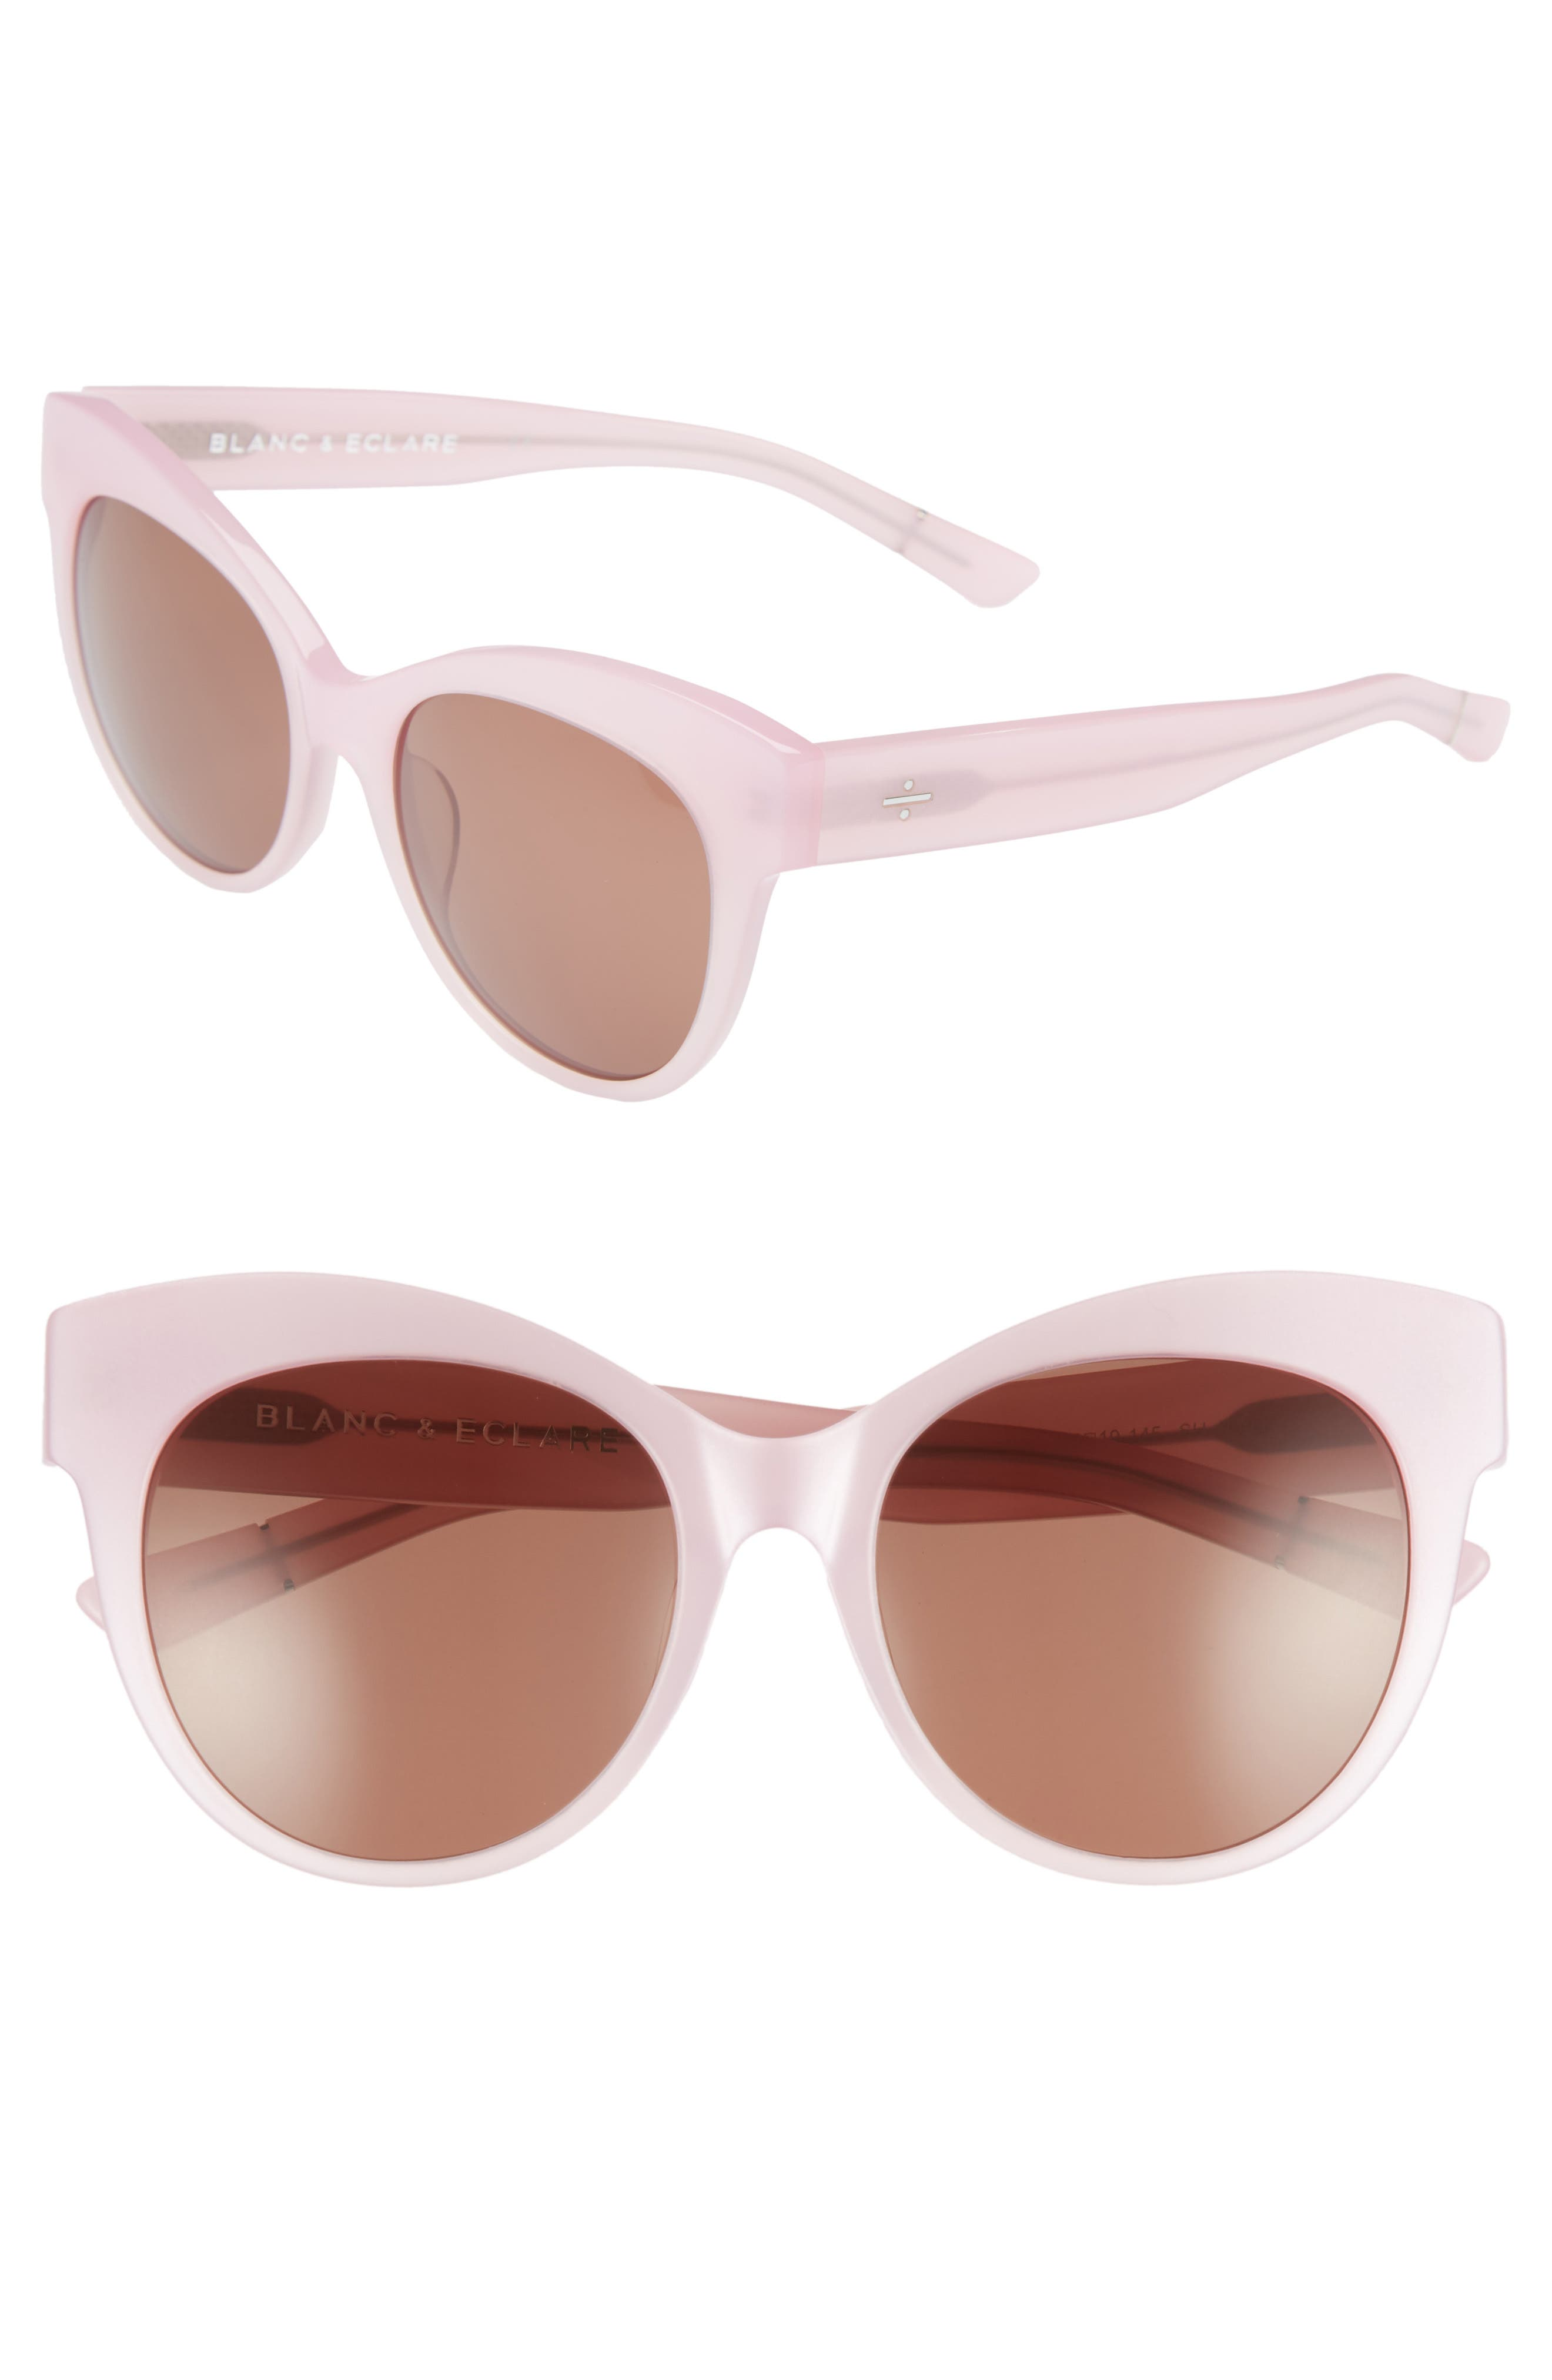 BLANC & ECLARE Paris 55mm Polarized Cat Eye Sunglasses,                             Main thumbnail 1, color,                             Blush